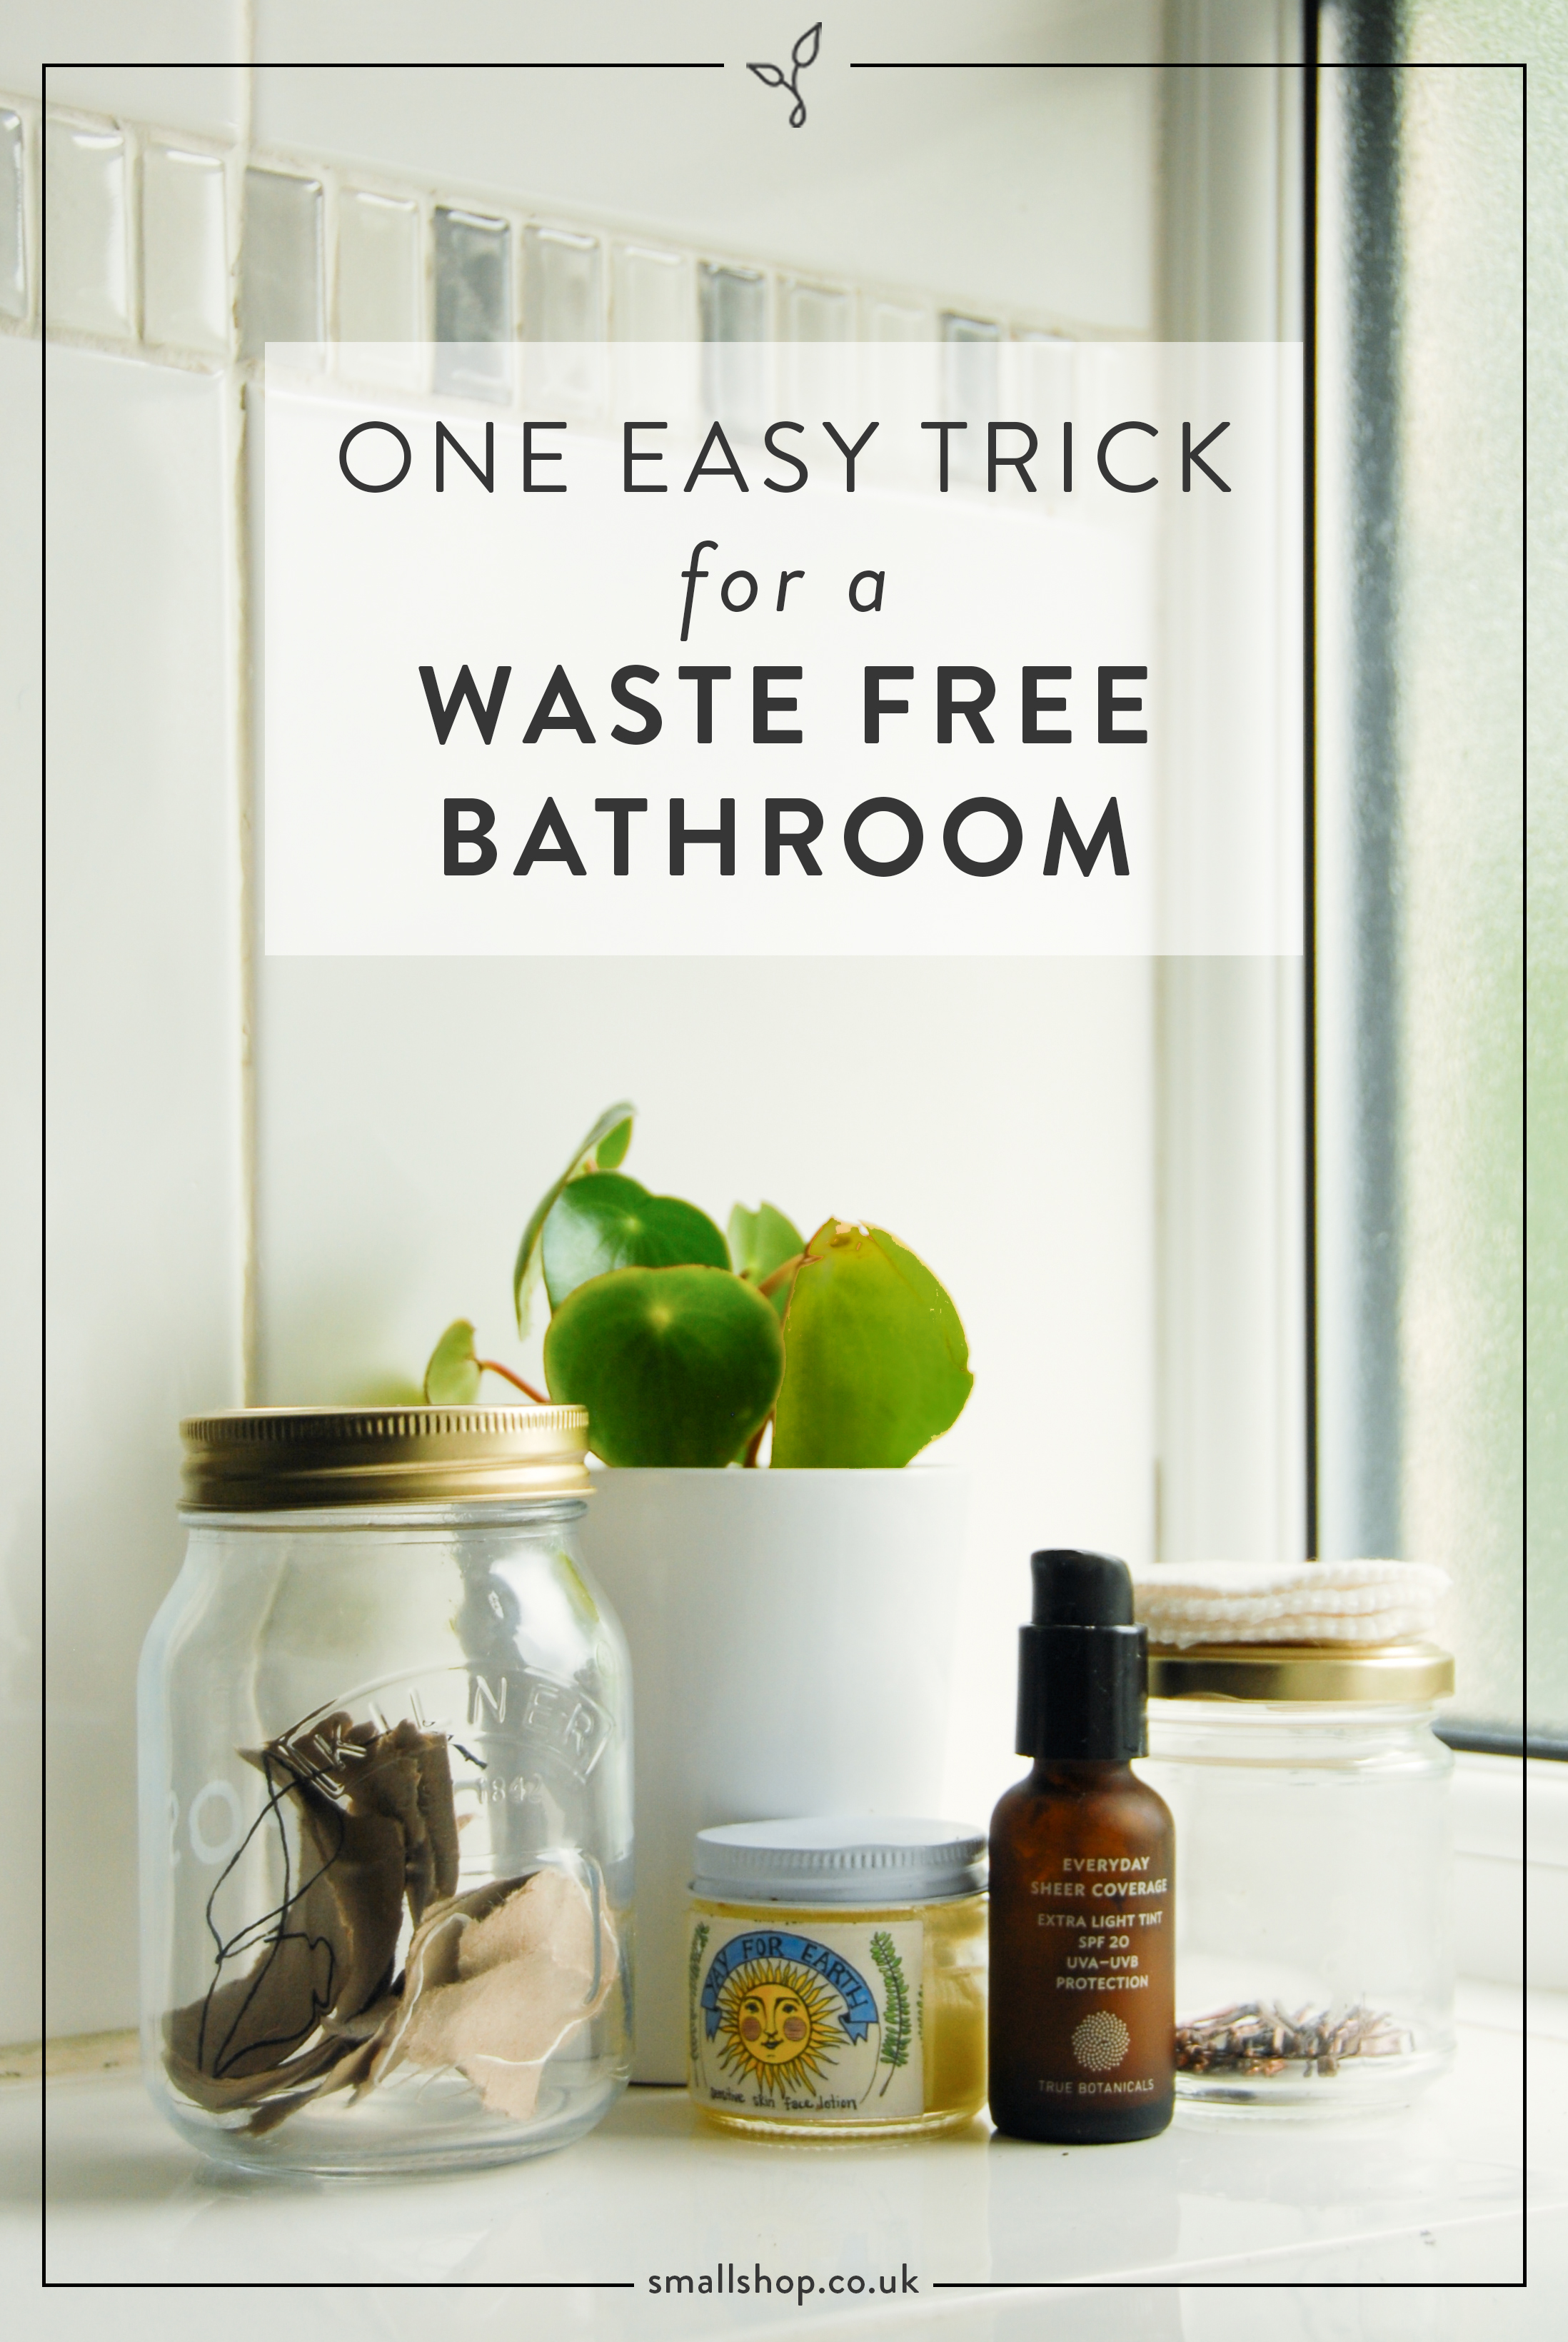 One easy trick for a waste free bathroom